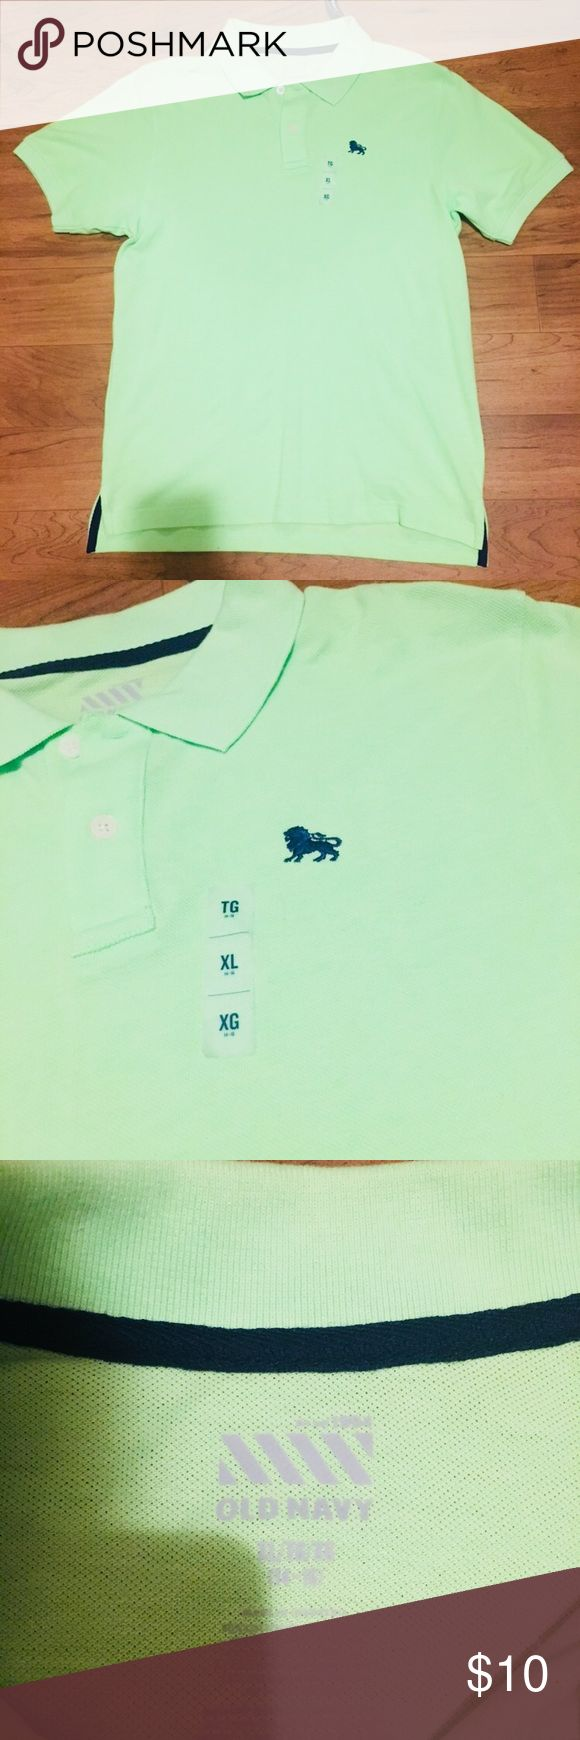 🔐Old Navy polo shirt🔐 Old Navy lime green polo shirt with blue accents!!! Never worn!!! NWT!!! Old Navy Shirts & Tops